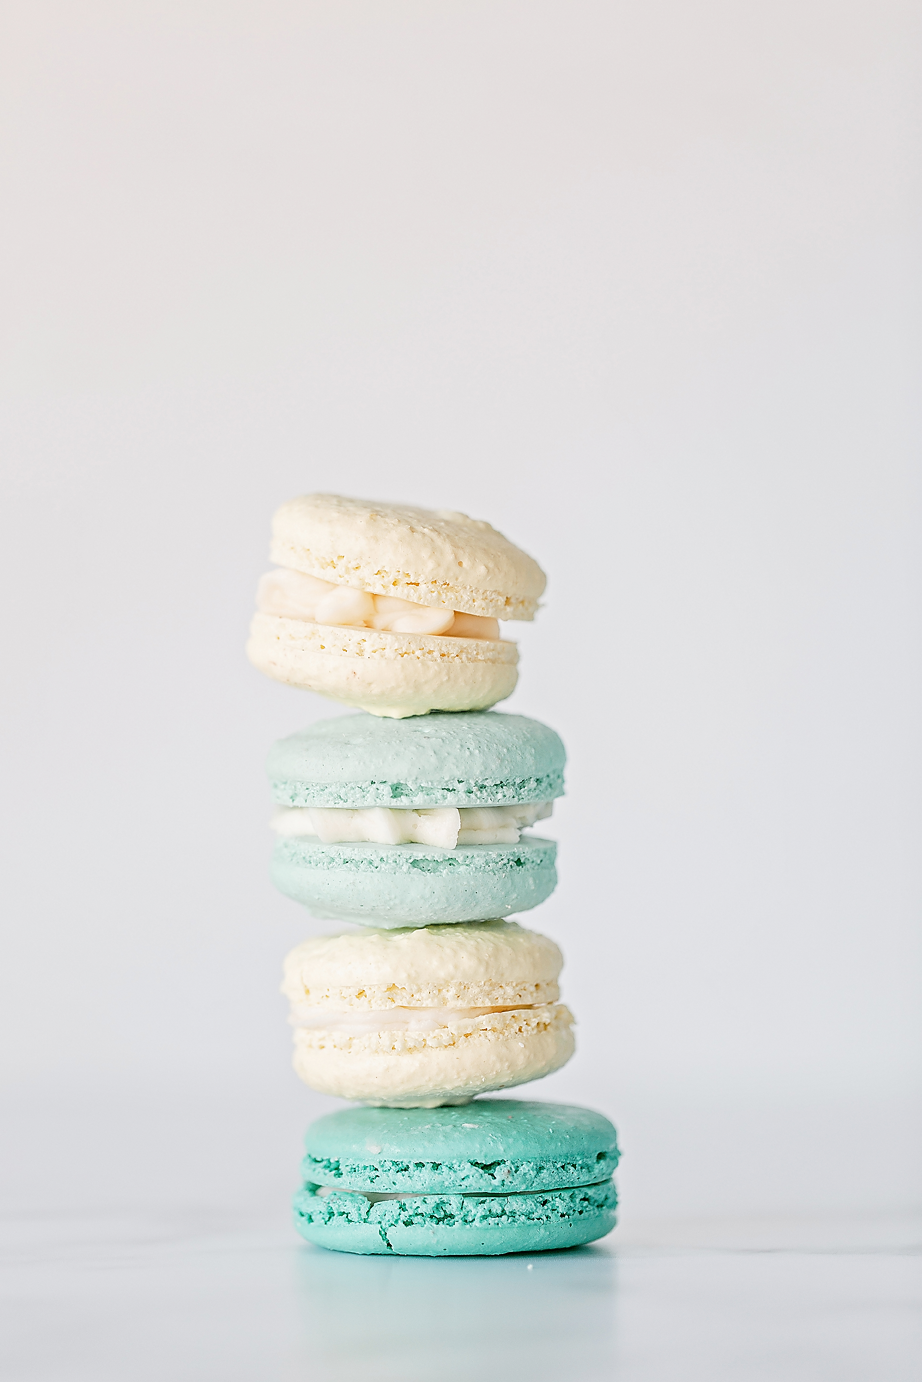 Dallas Food Photographer Flower Mound The Flour Shop French Macarons Kate Marie Portraiture 2.png